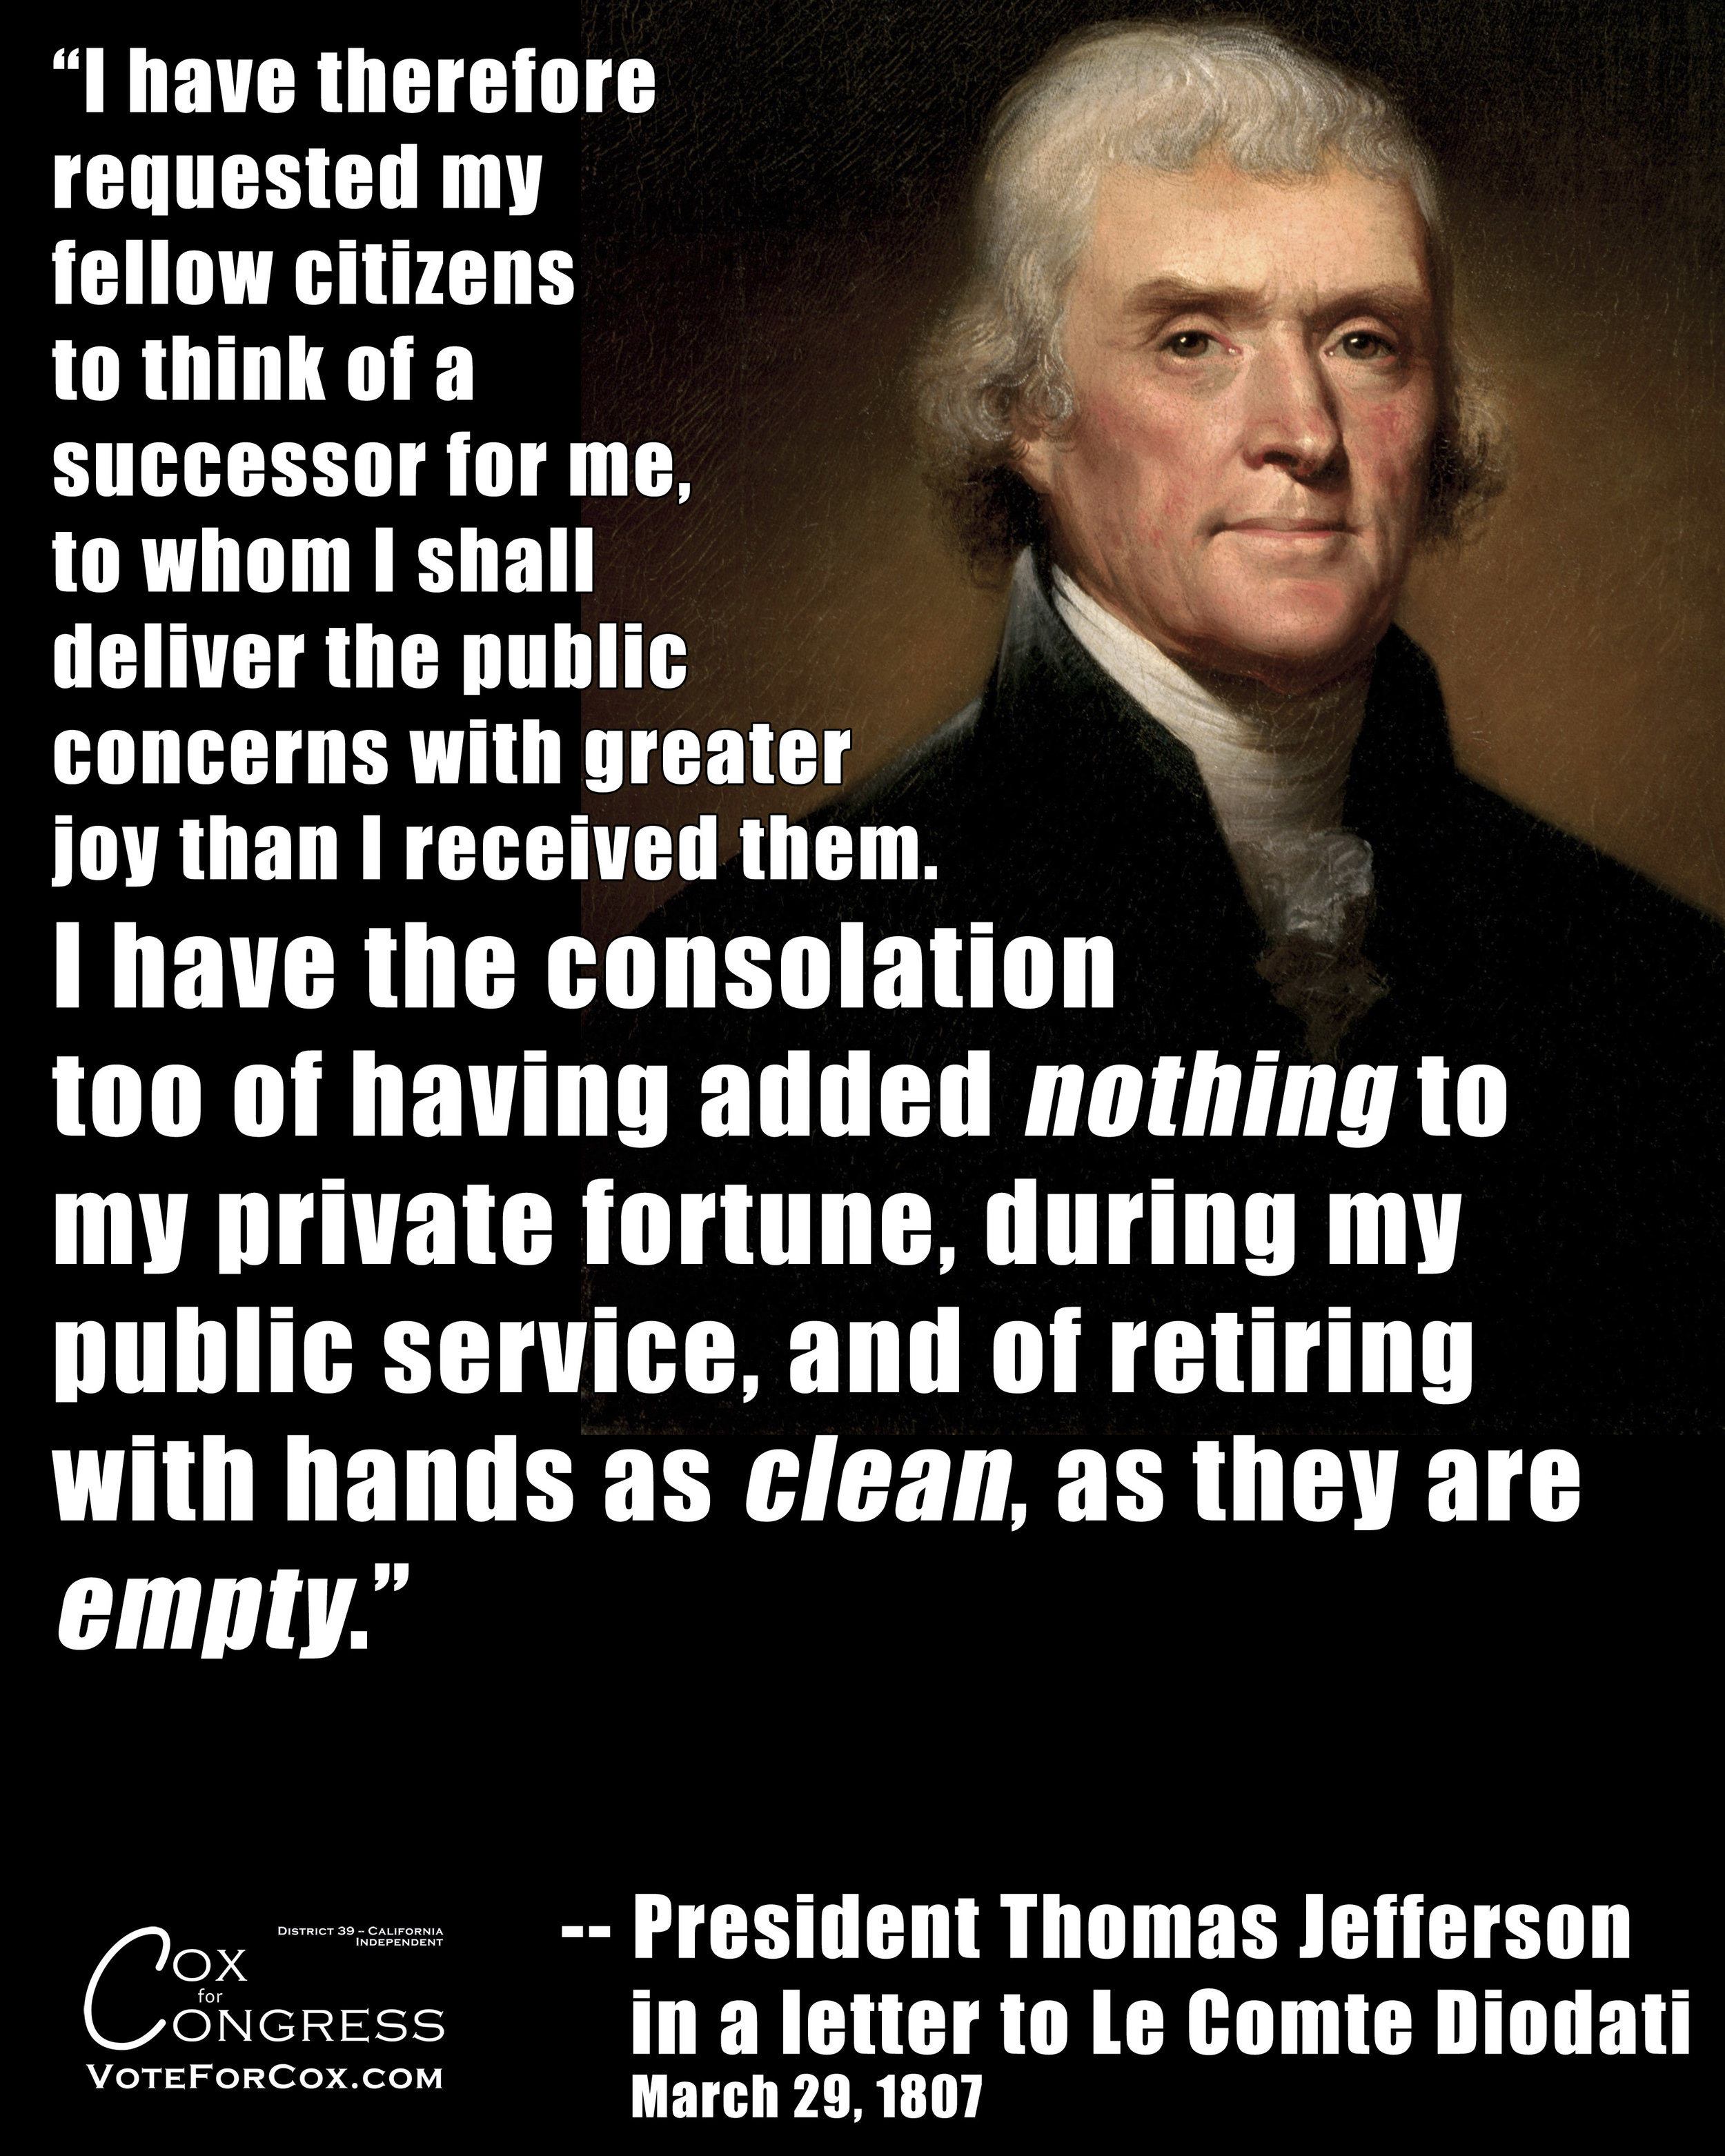 Thomas Jefferson on being proud of not using his position as the president of the United States to become any wealthier. In fact, he died broke.